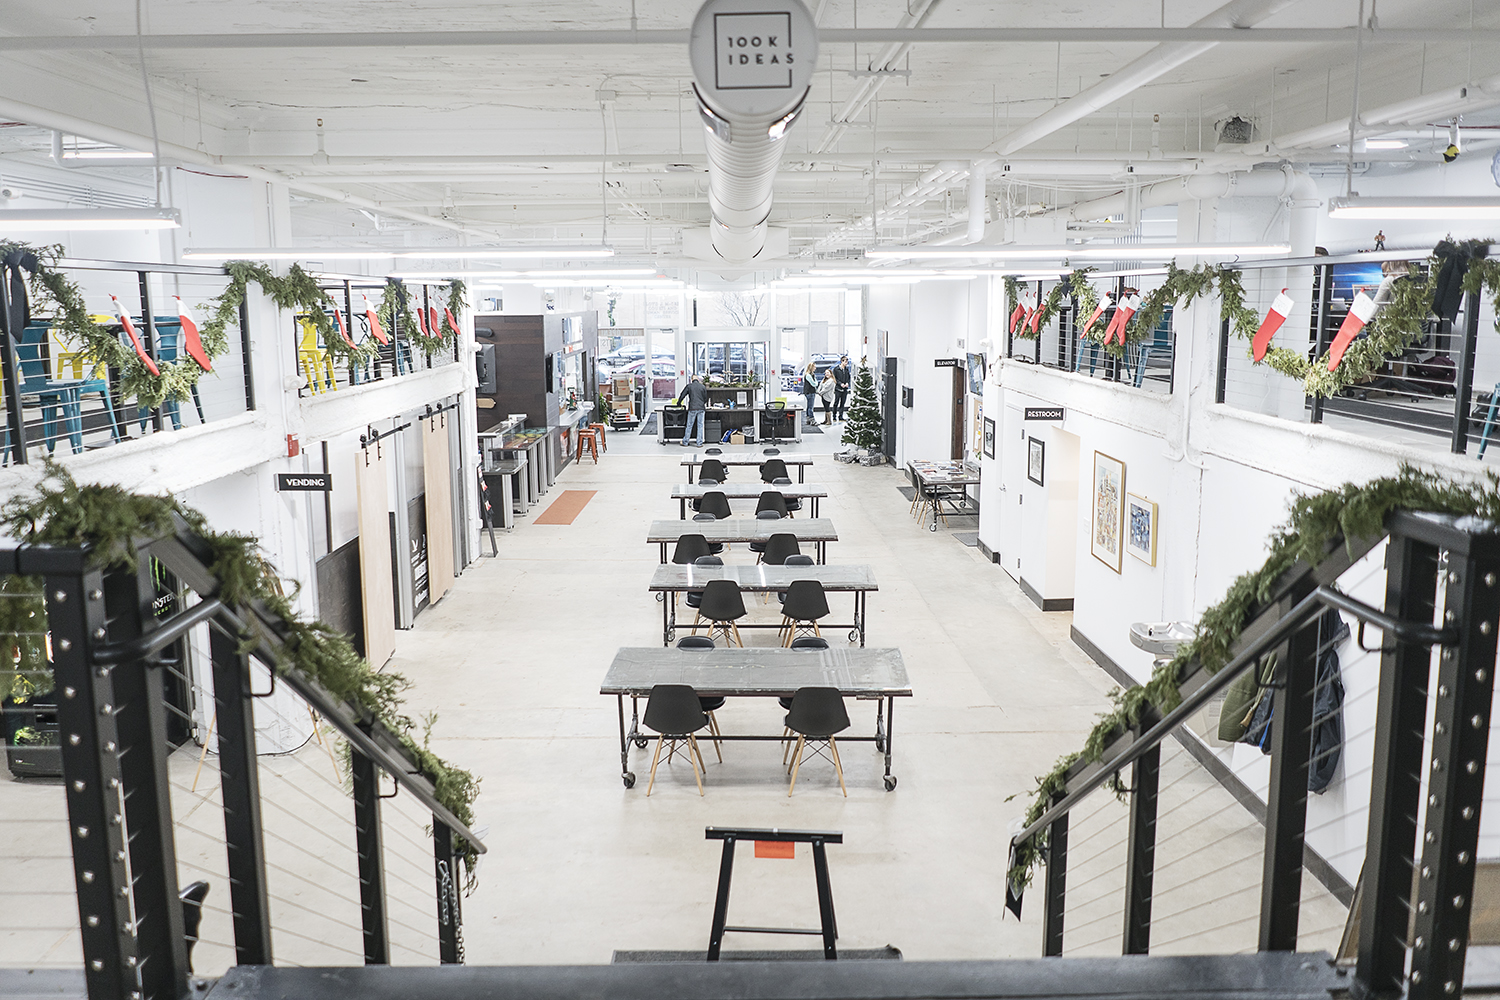 Flint, MI - Friday, December 22, 2017: 100k Ideas, located on the first and second floor of the Ferris wheel downtown, offers inventors and innovators the support and ability to make their dreams come to fruition. Tim Galloway for FlintSide